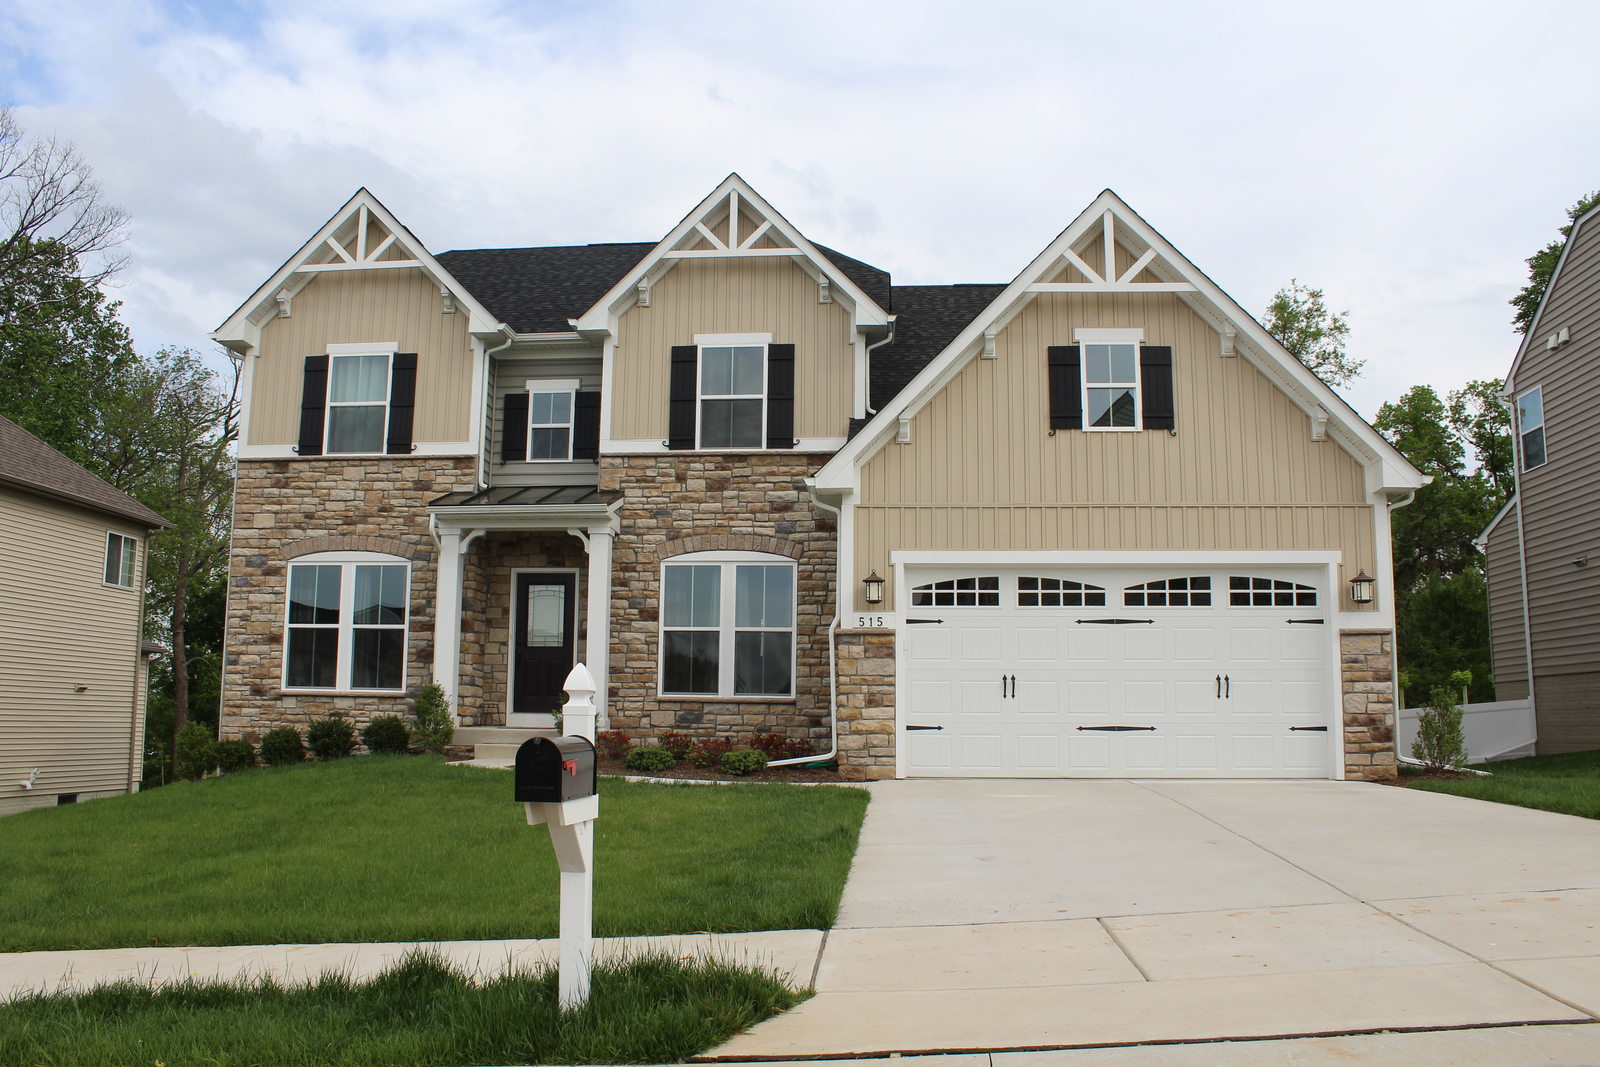 New Oberlin Terrace Home Model For Sale Heartland Homes